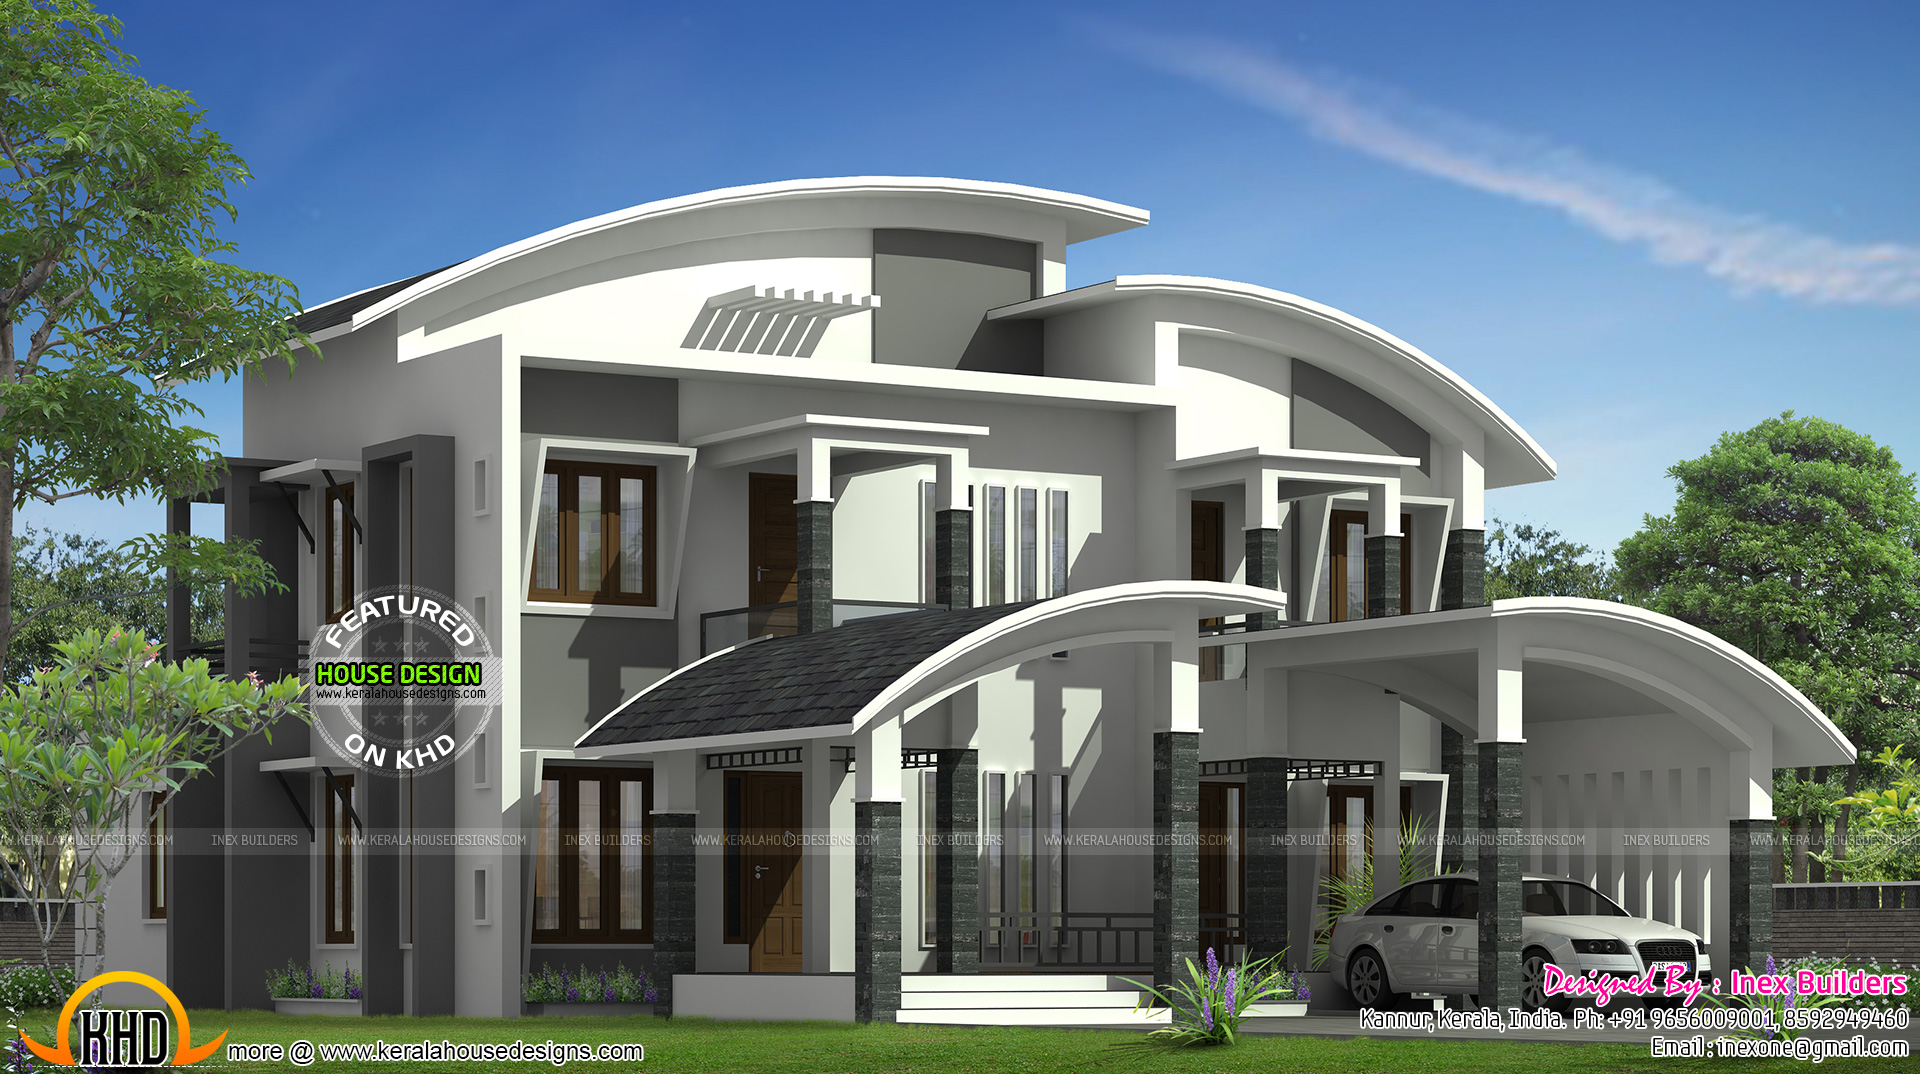 Kerala home design and floor plans: Curved roof house plan